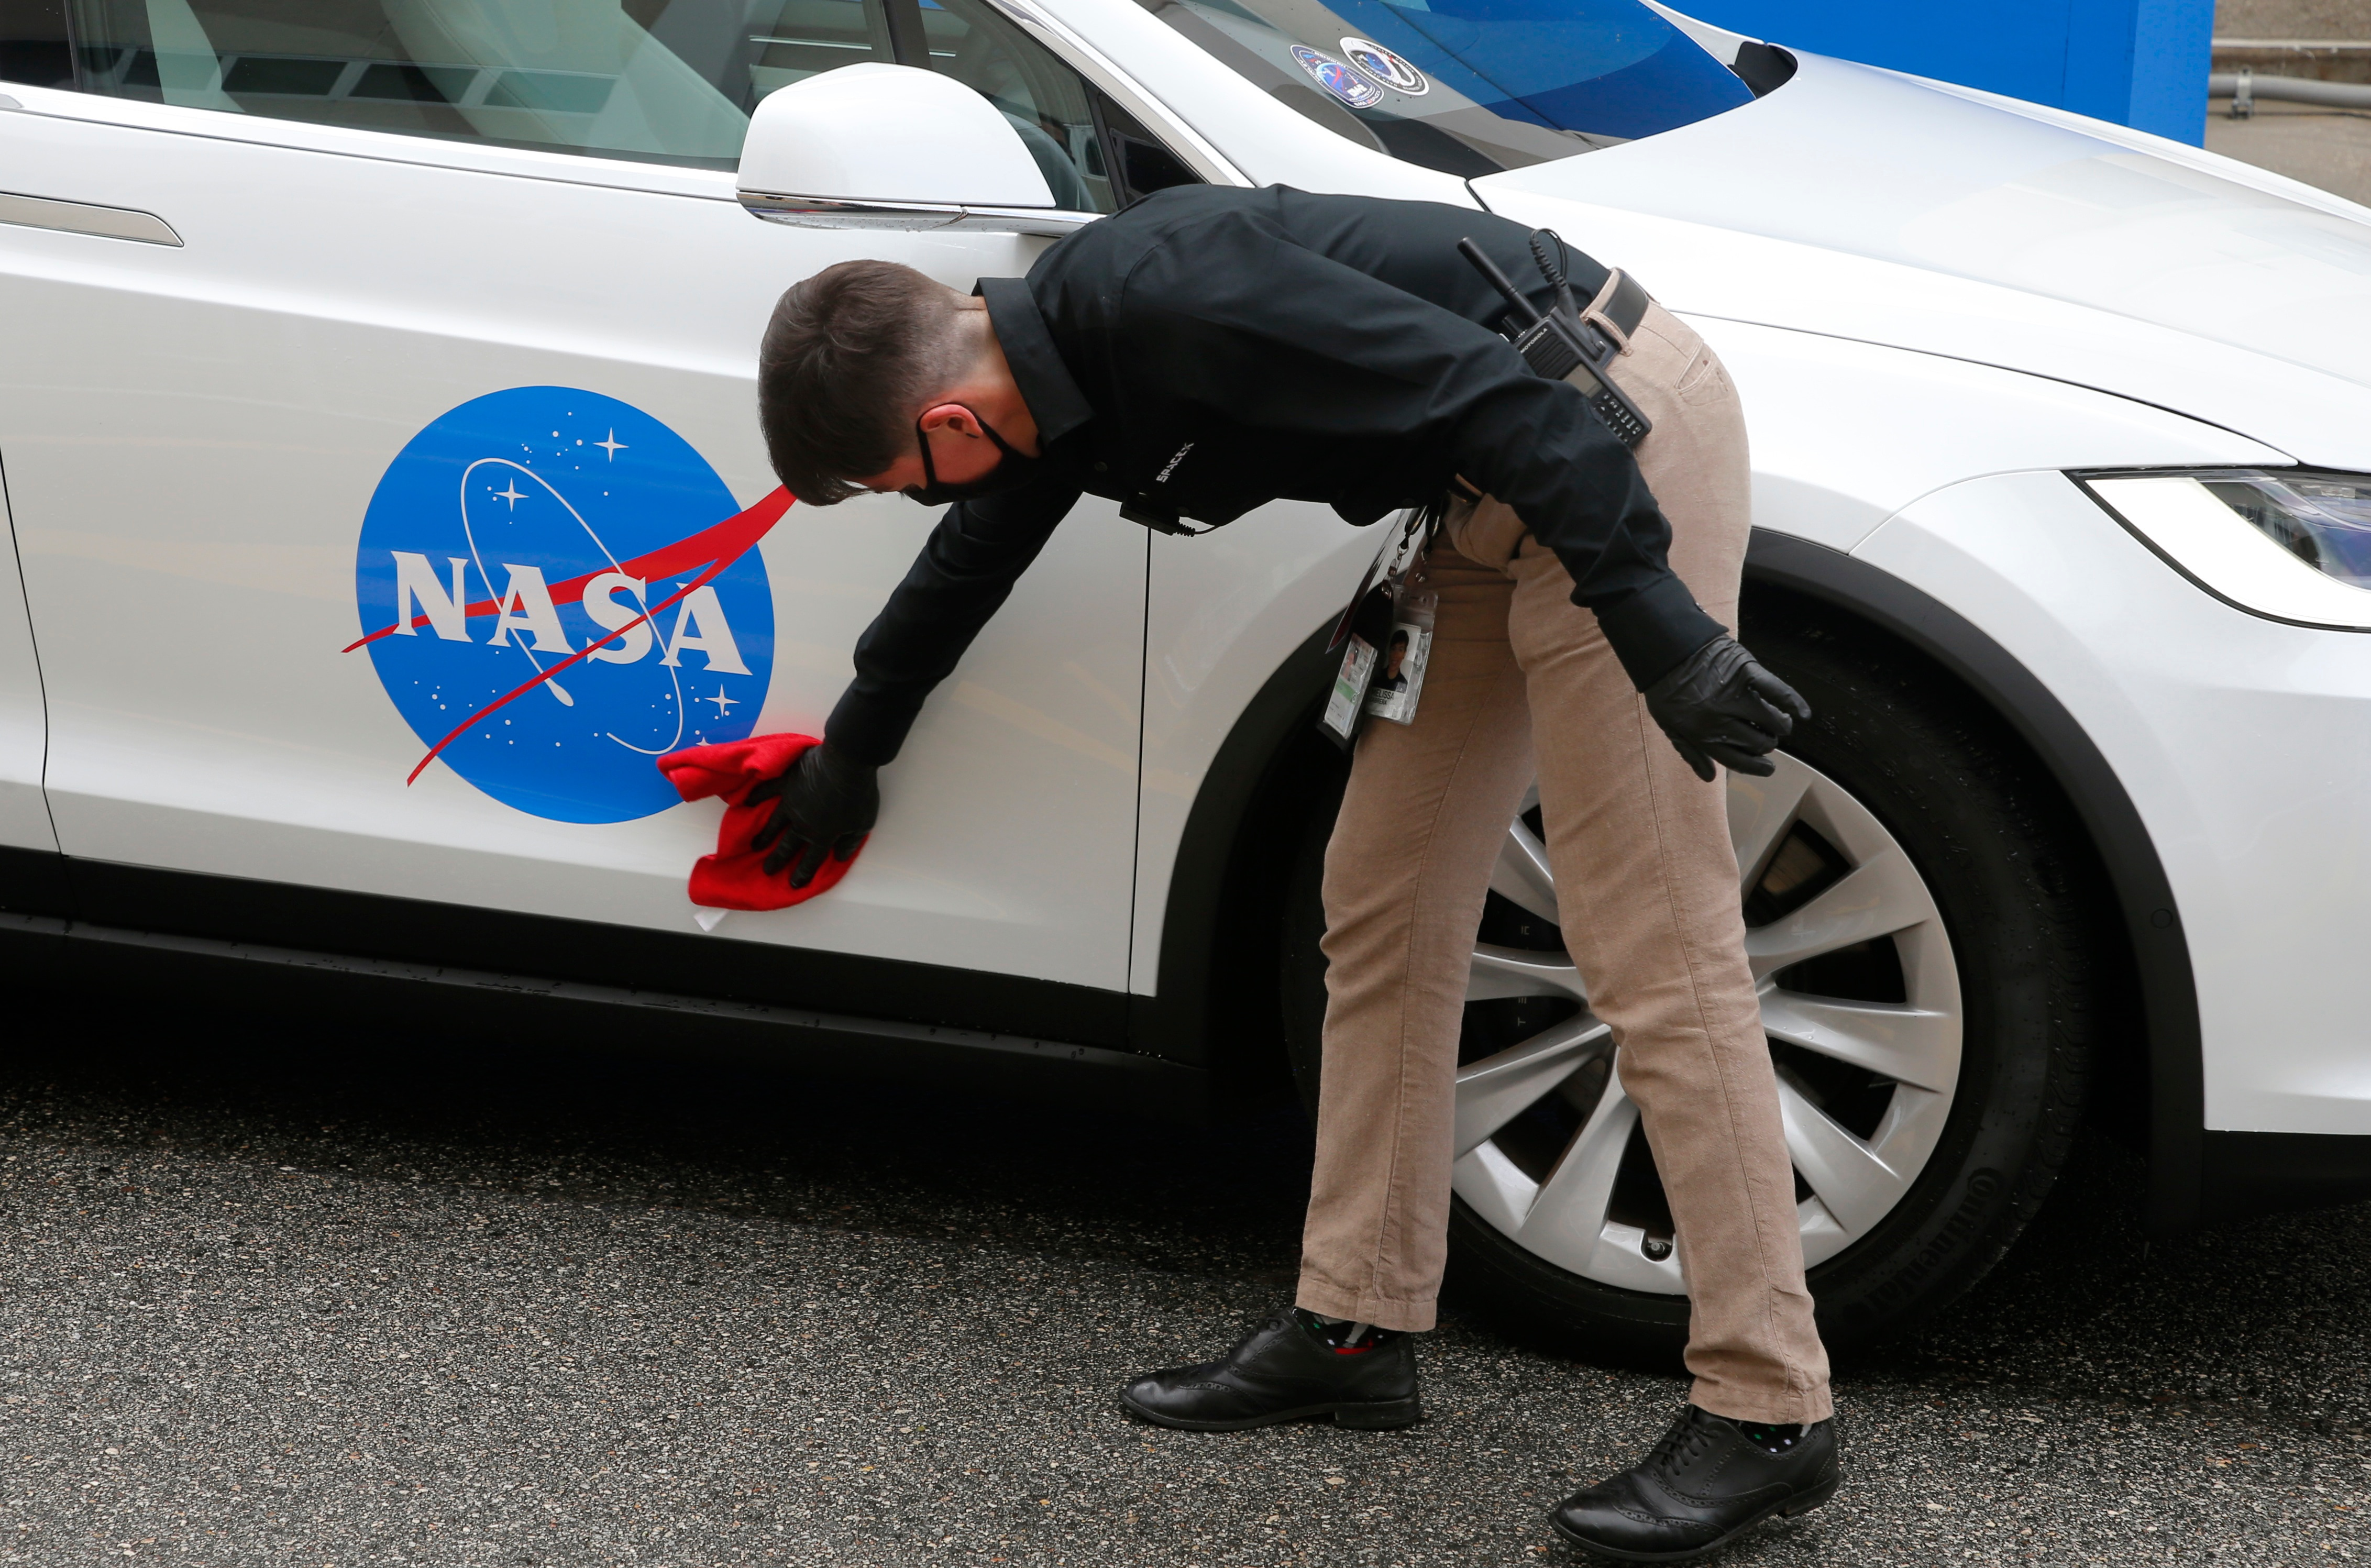 The crew car of the NASA astronauts is polished before the launch of a SpaceX Falcon 9 rocket. (REUTERS)